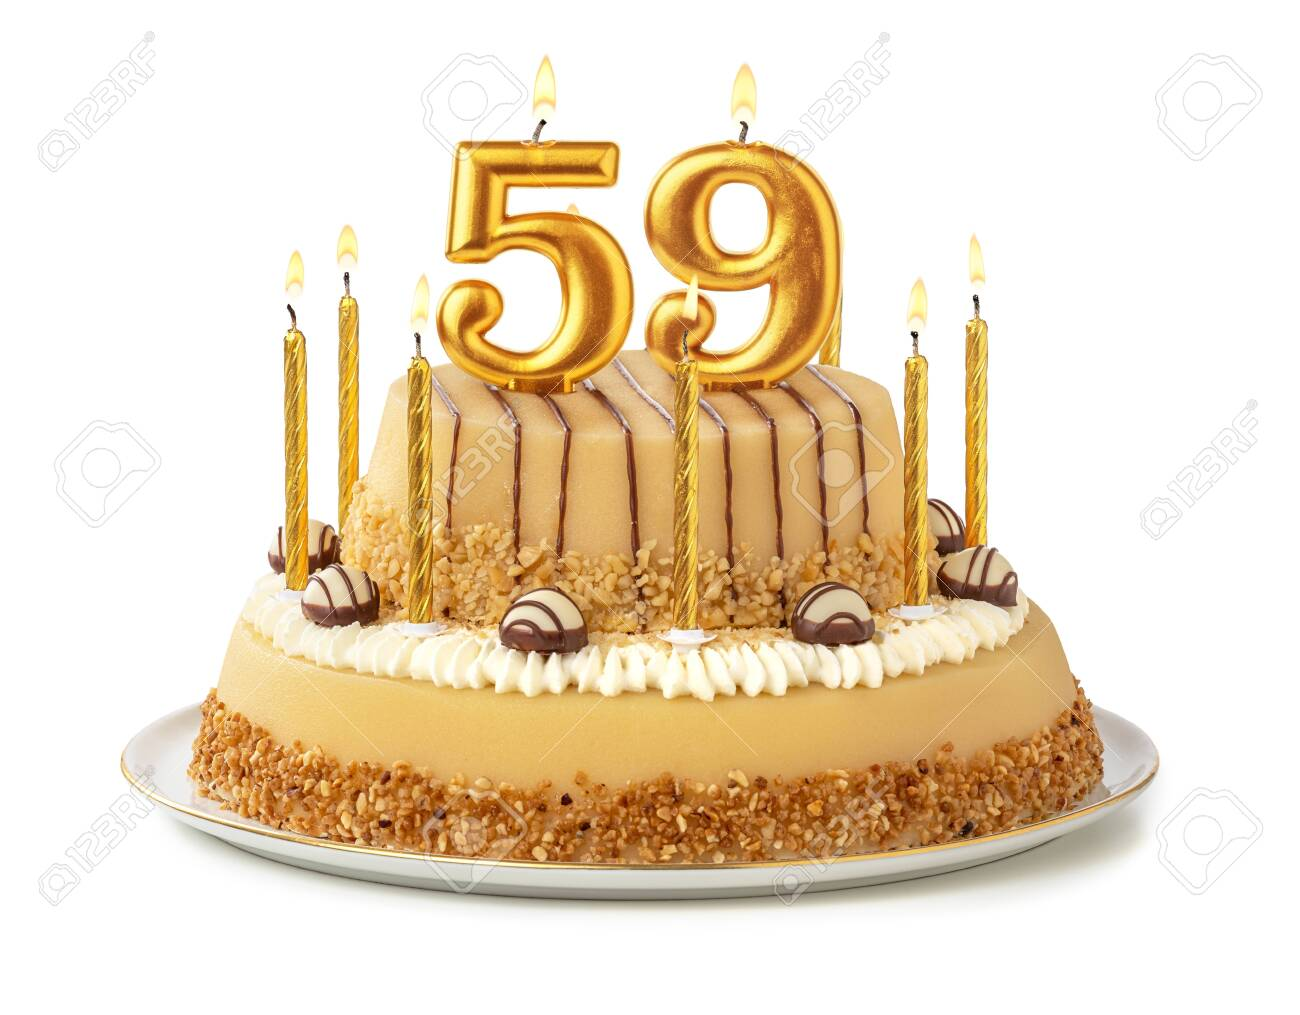 129322599-festive-cake-with-golden-candles-number-59.jpg